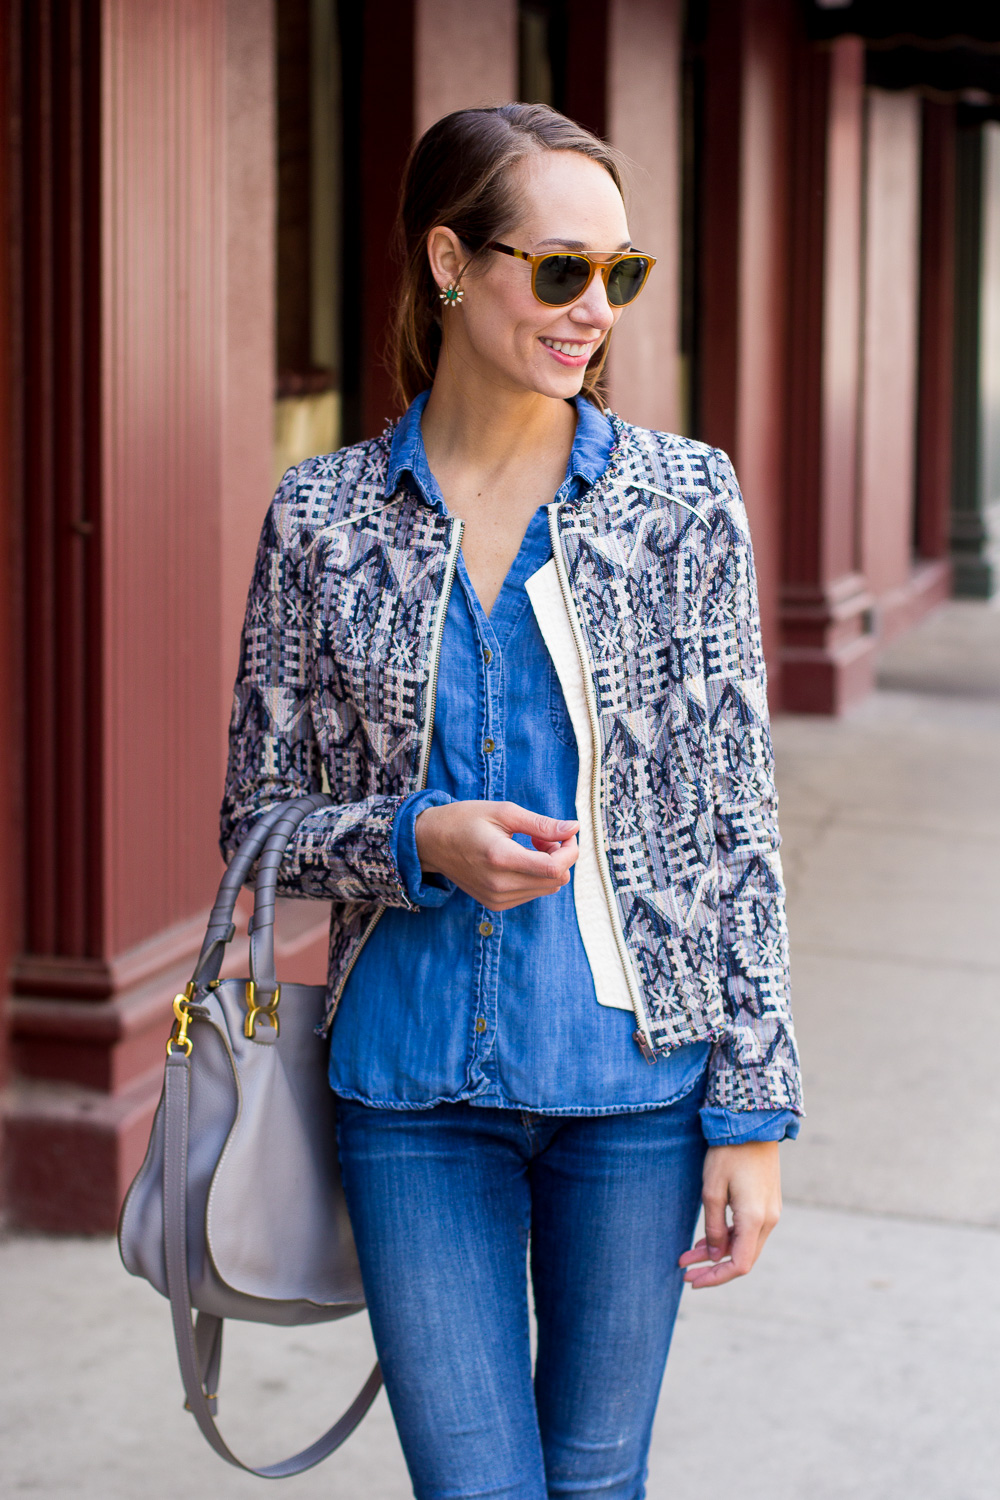 canadian tuxedo, denim on denim, chambray shirt, shibori jacket, blair staky, the fox and she